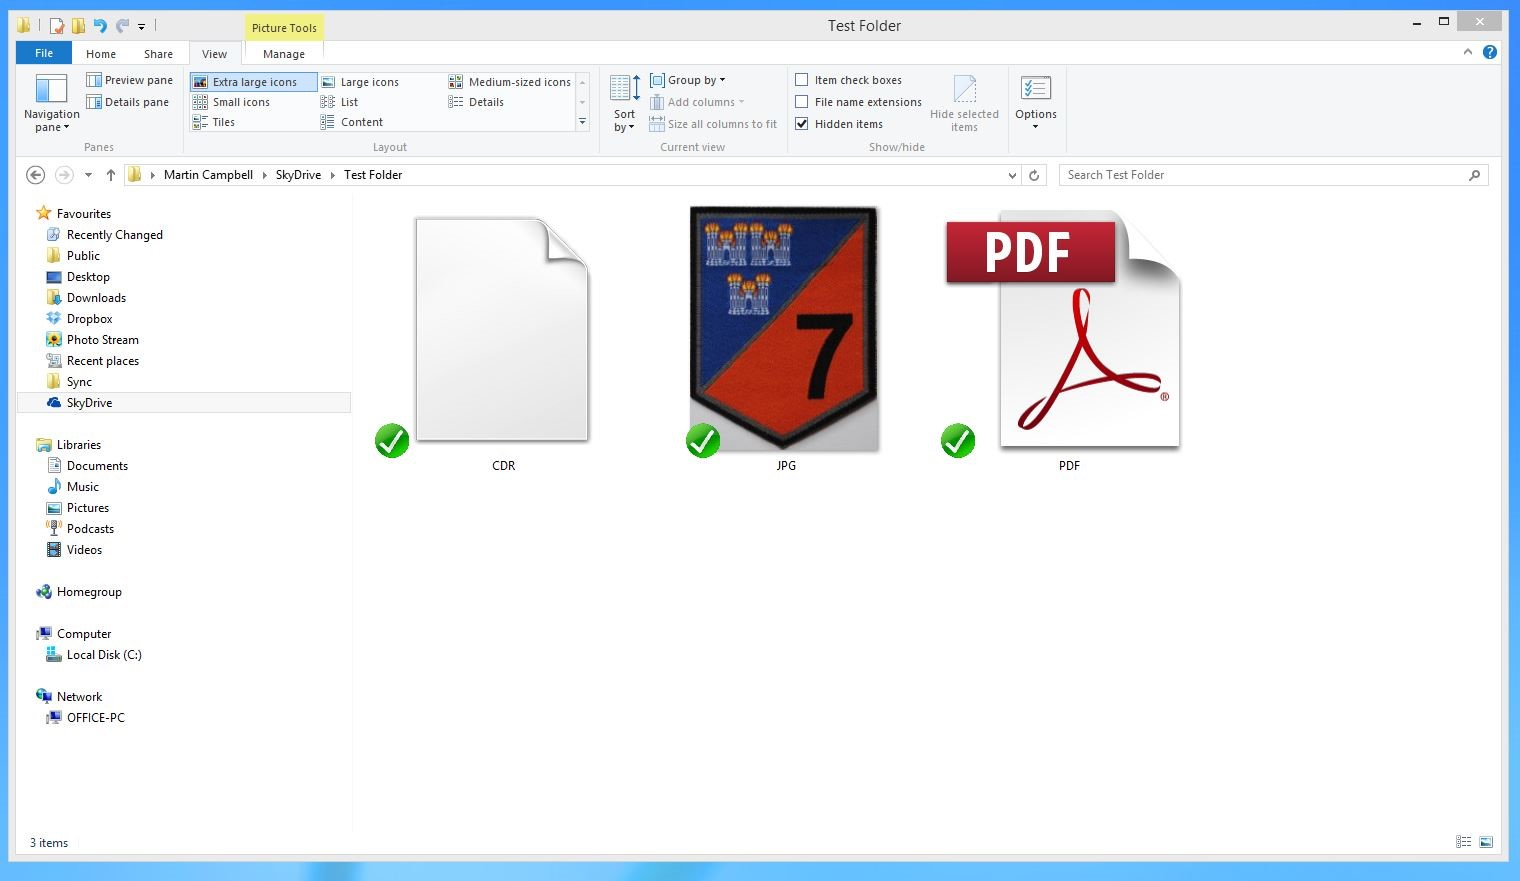 Windows shell extension corel x6 download